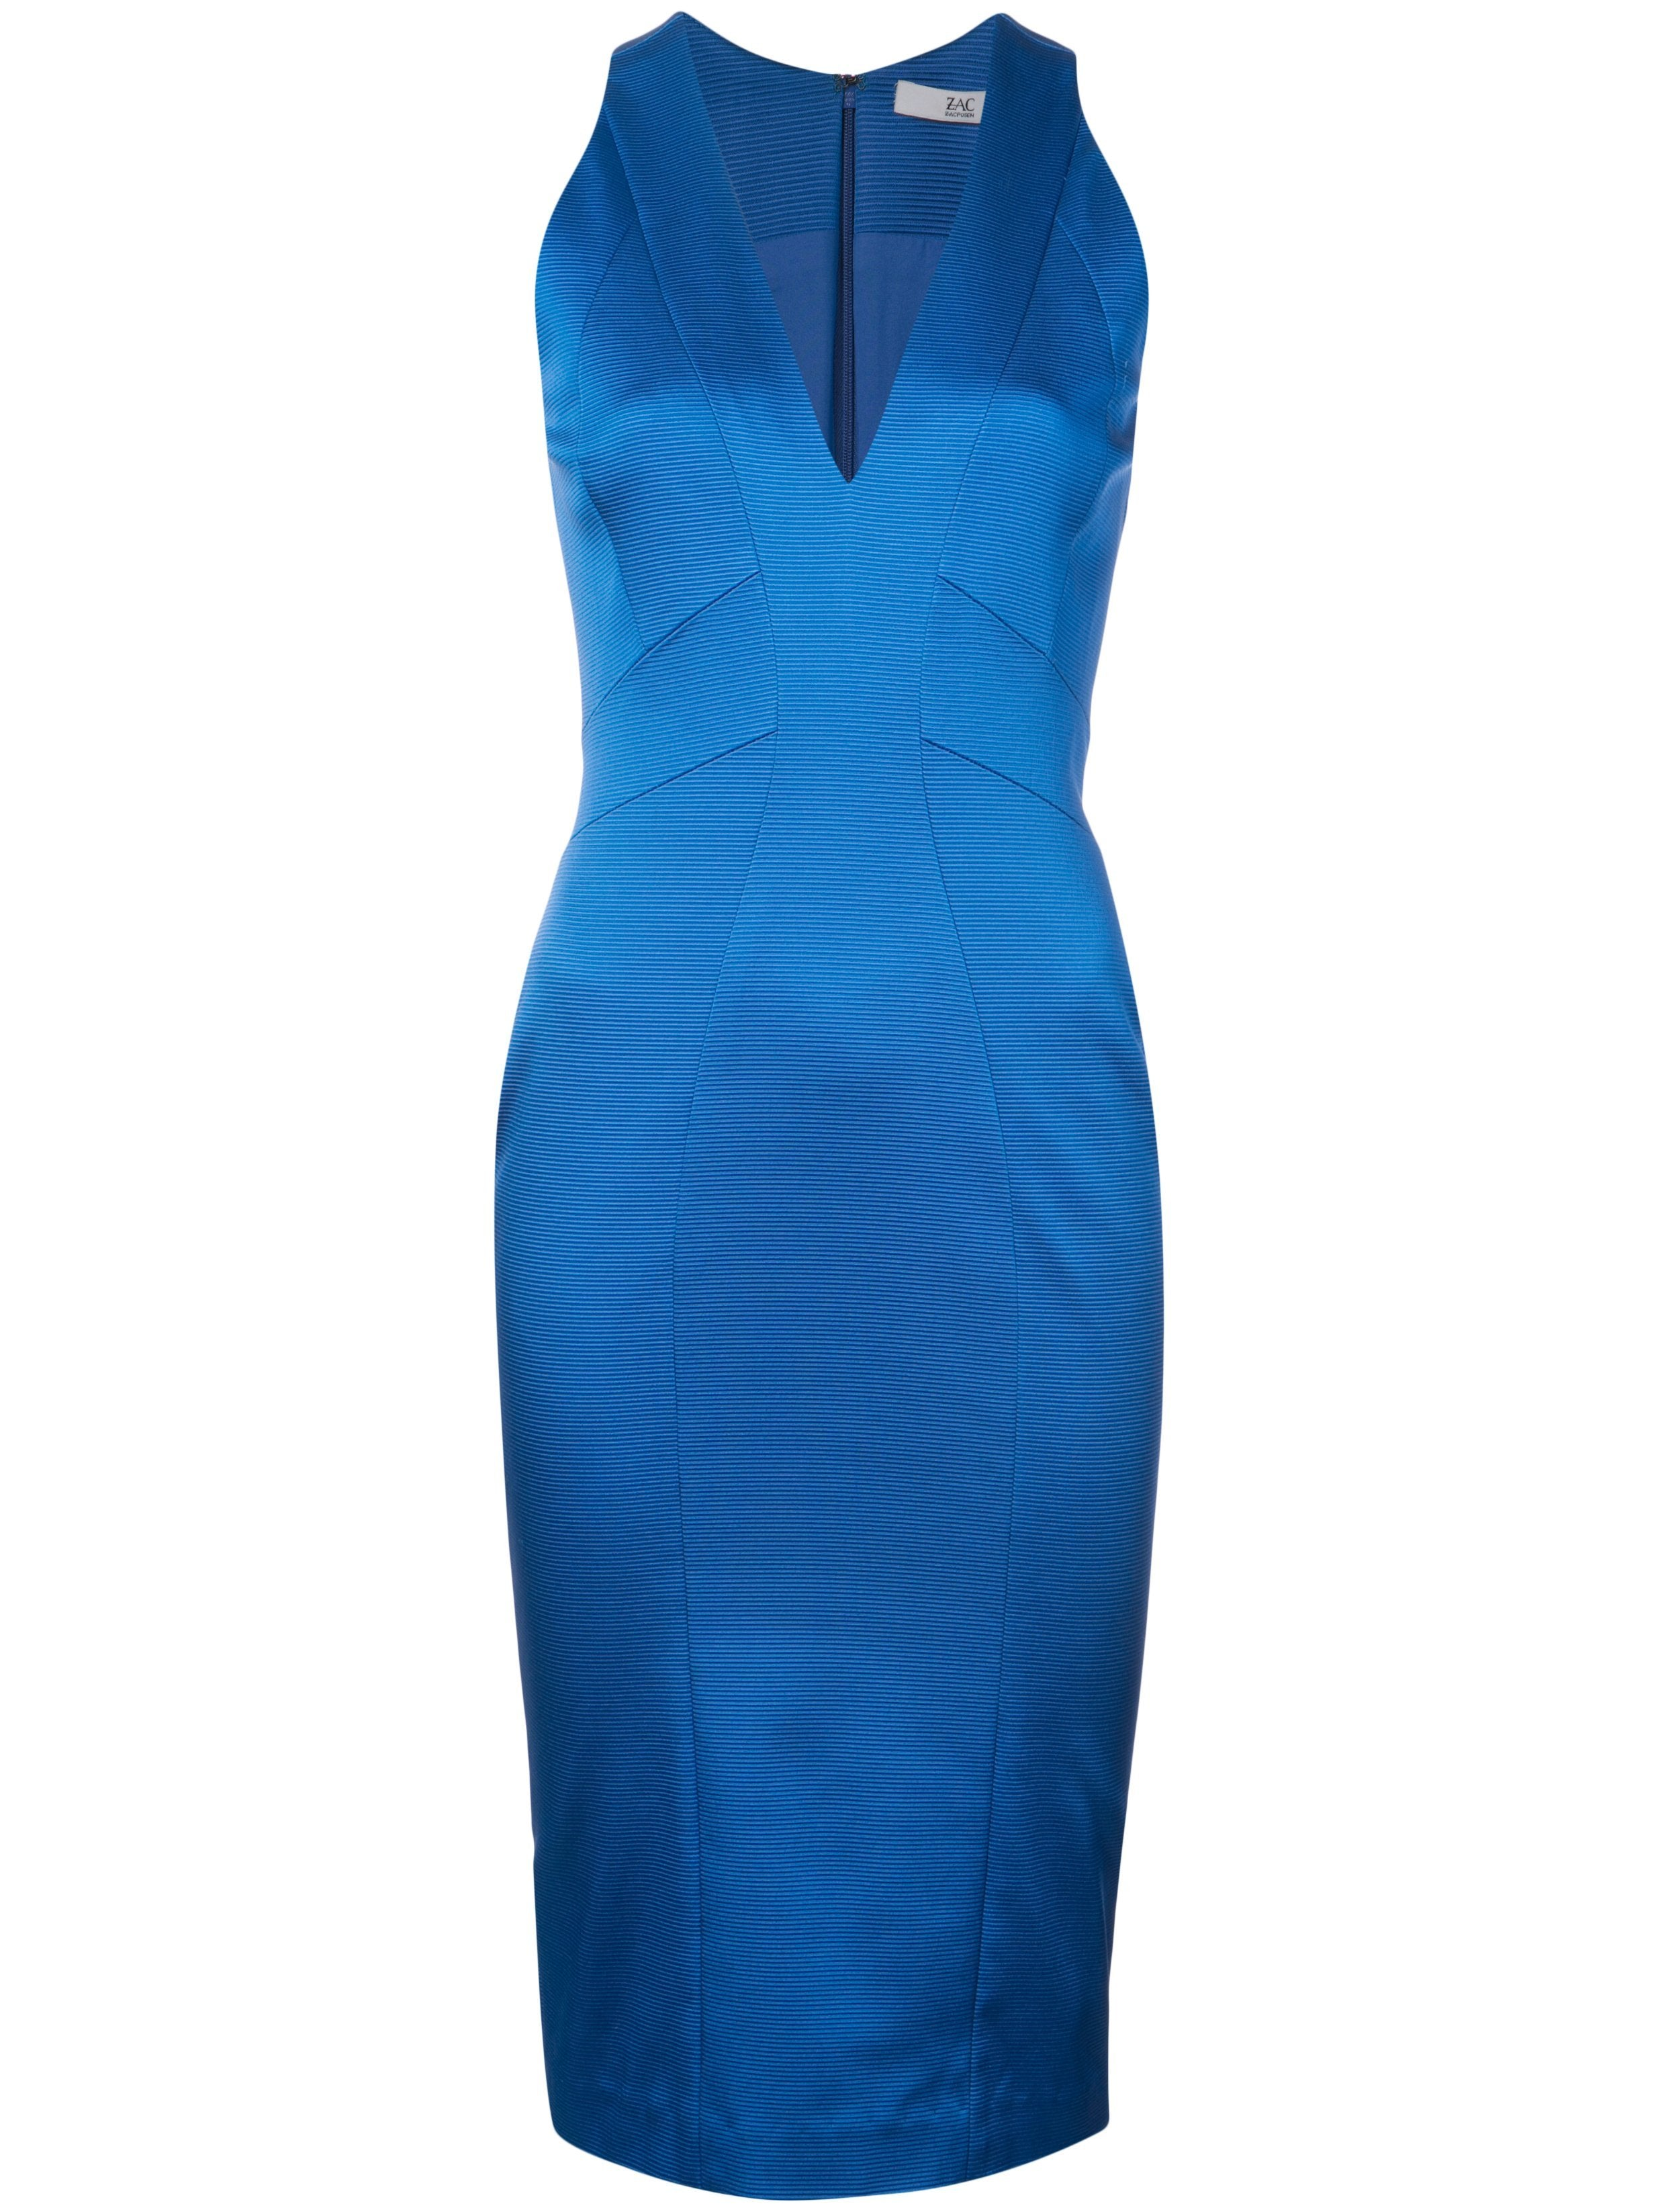 ZAC Zac Posen -Sirena Dress- Product